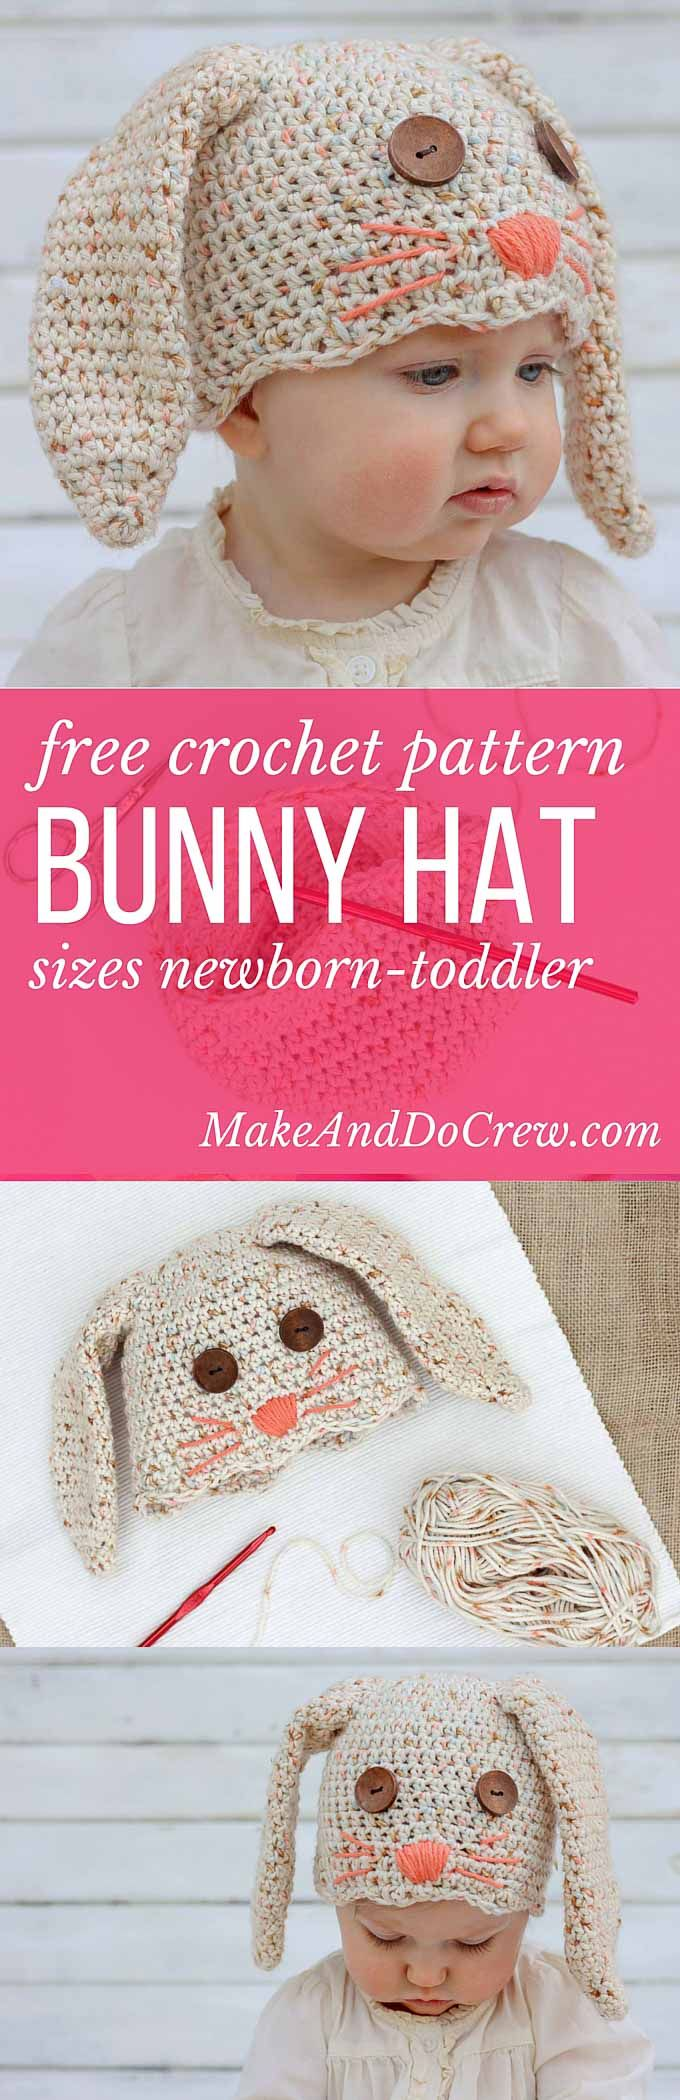 90e66dc7c1a This free crochet bunny hat pattern makes a darling DIY Easter gift for  your favorite baby or toddler. Sizes newborn